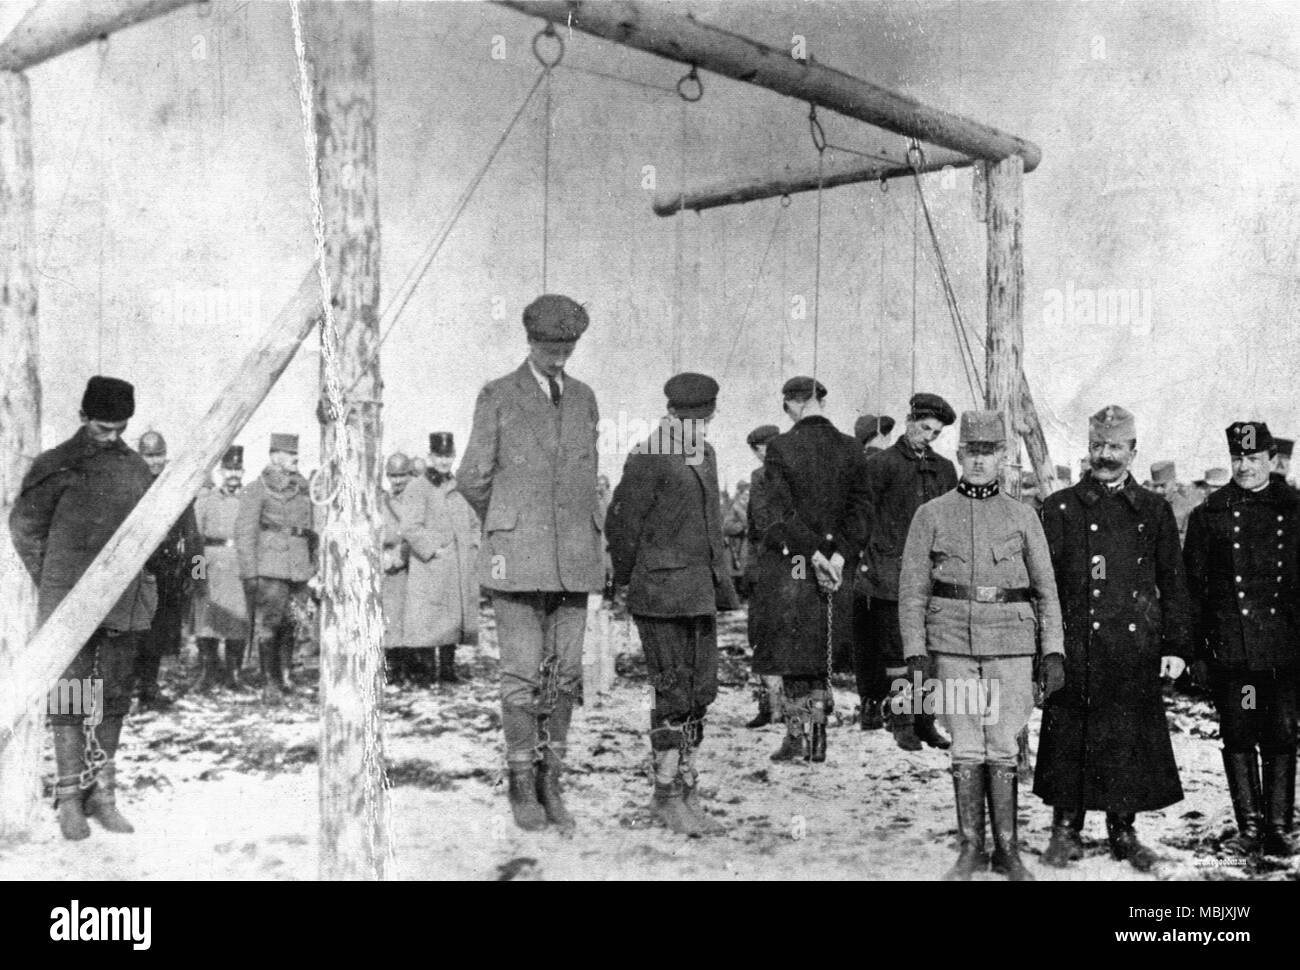 Executing an Unkind War - Hanging on Serbia - Stock Image